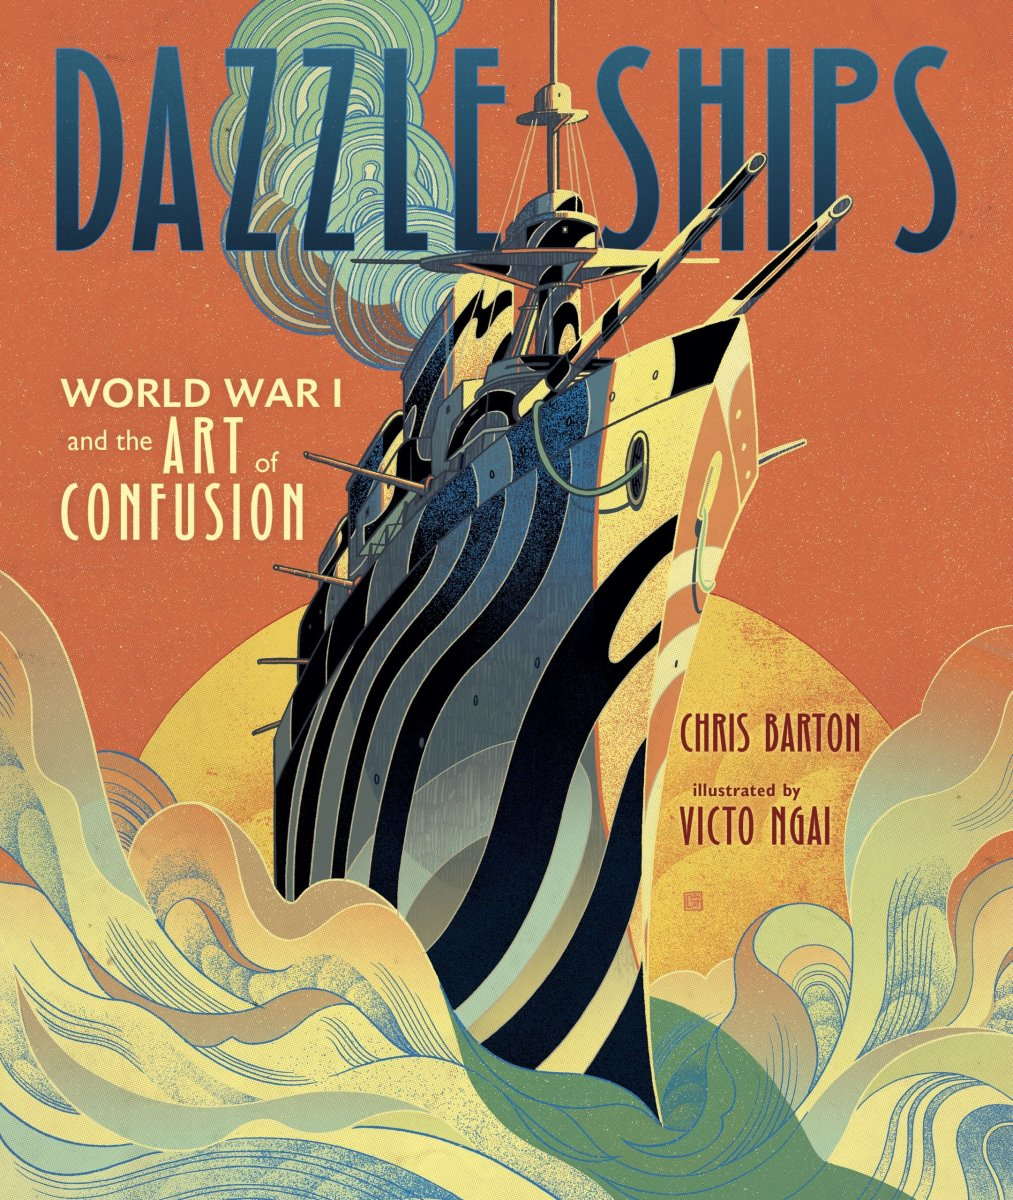 Dazzle Ships by Chris Barton